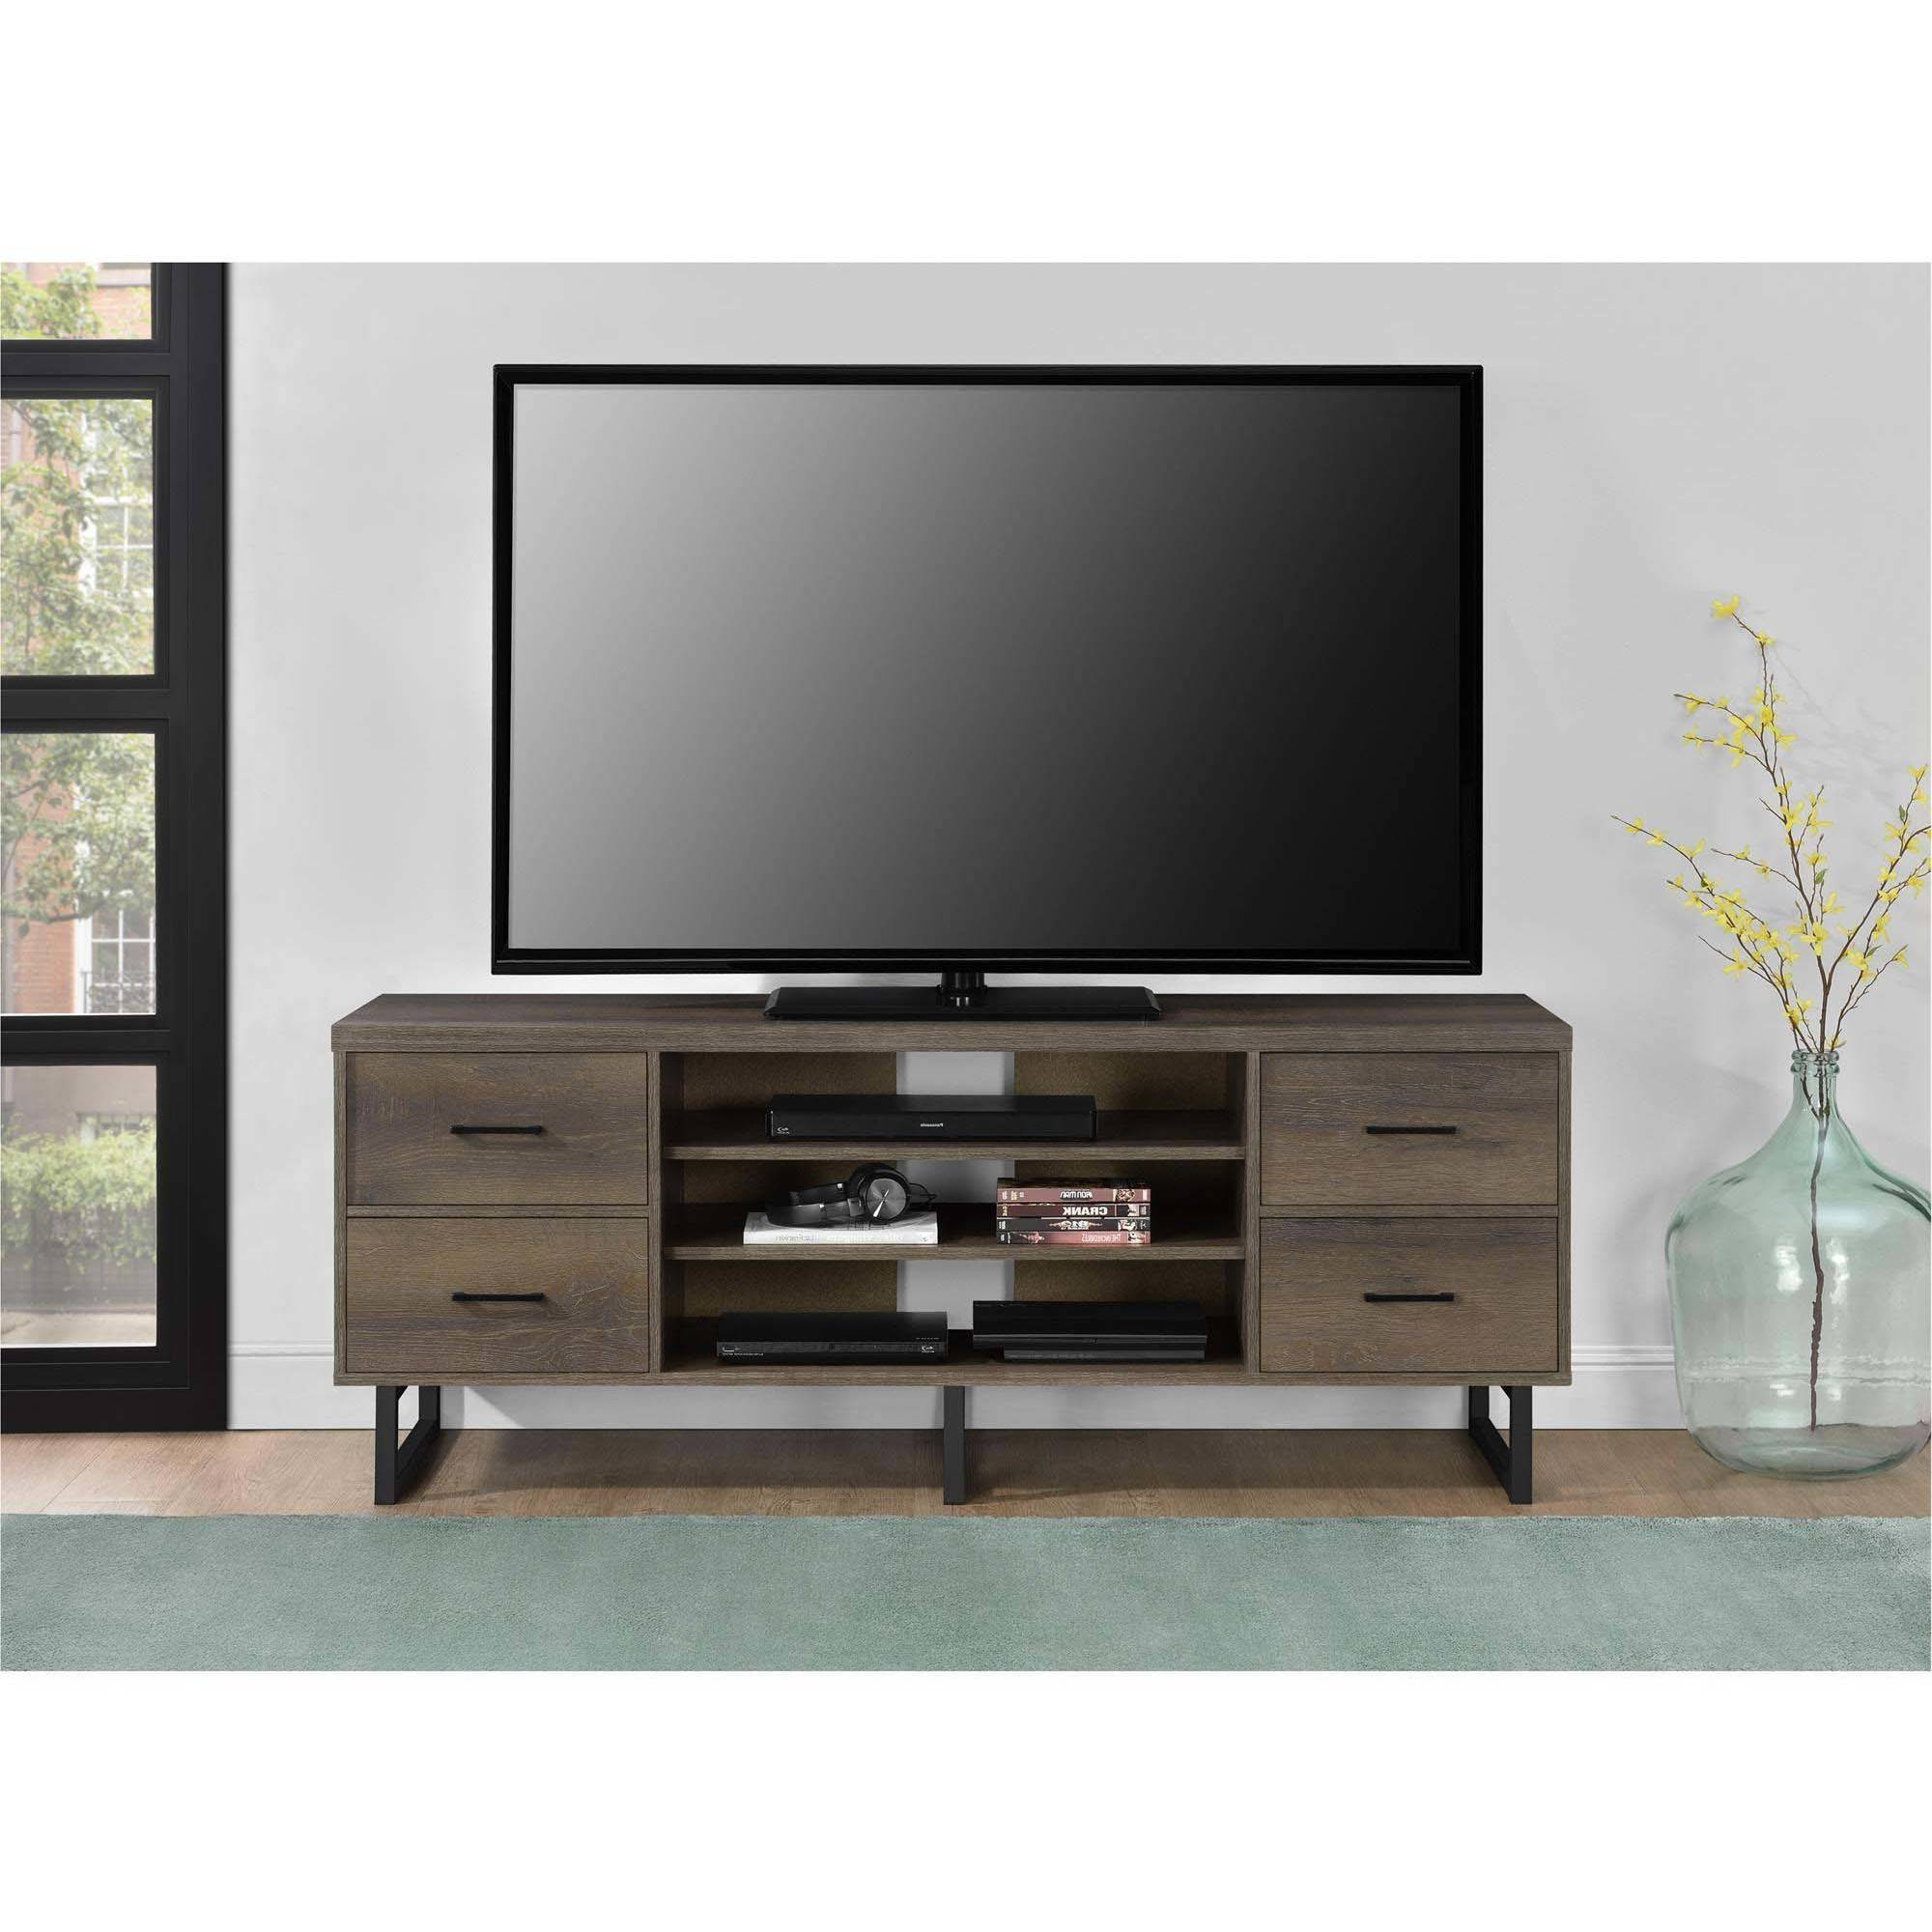 """Ameriwood Home Candon Tv Stand With Bins For Tvs Up To 60 Intended For Kasen Tv Stands For Tvs Up To 60"""" (View 4 of 20)"""